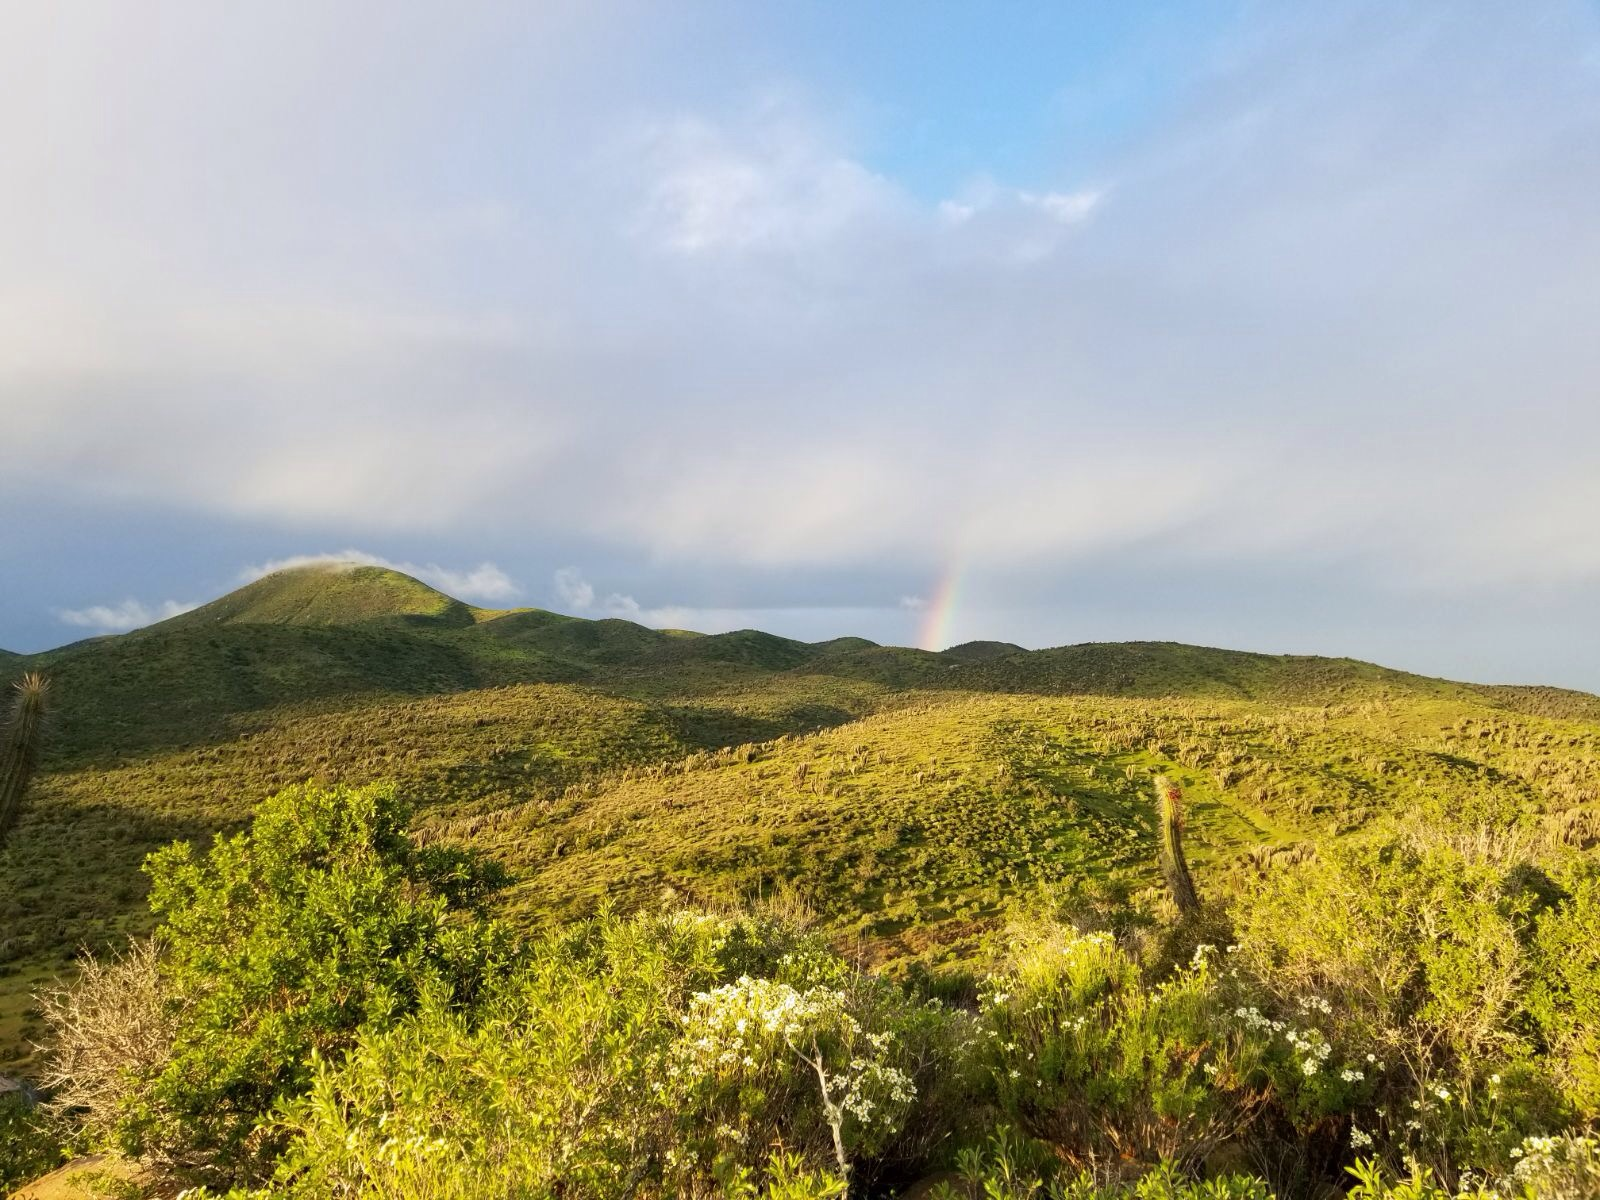 A rainbow shoots out from the hills in the distance.